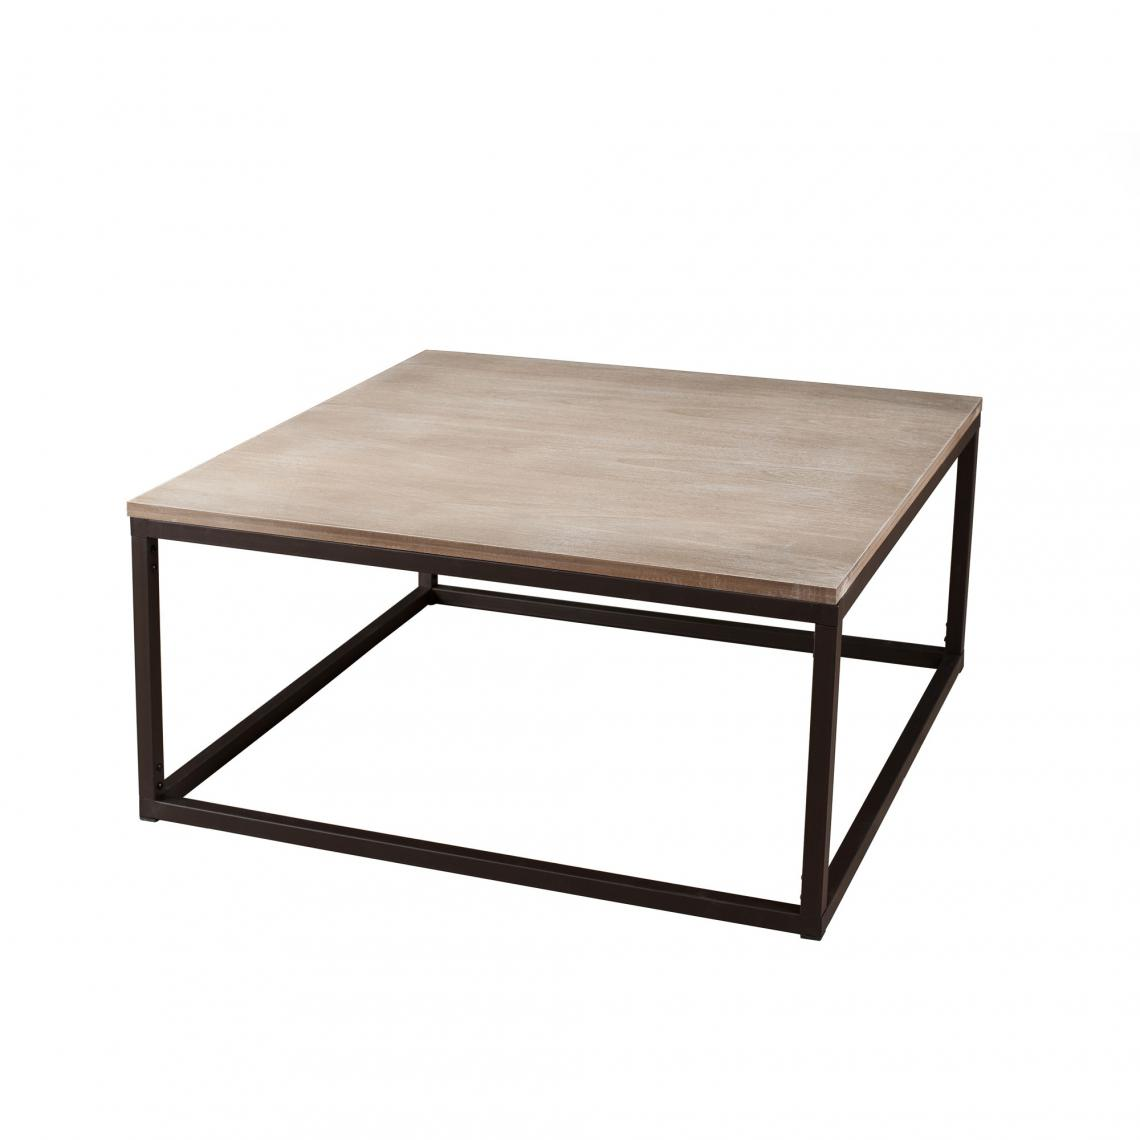 table basse carree 90 x 90 cm style